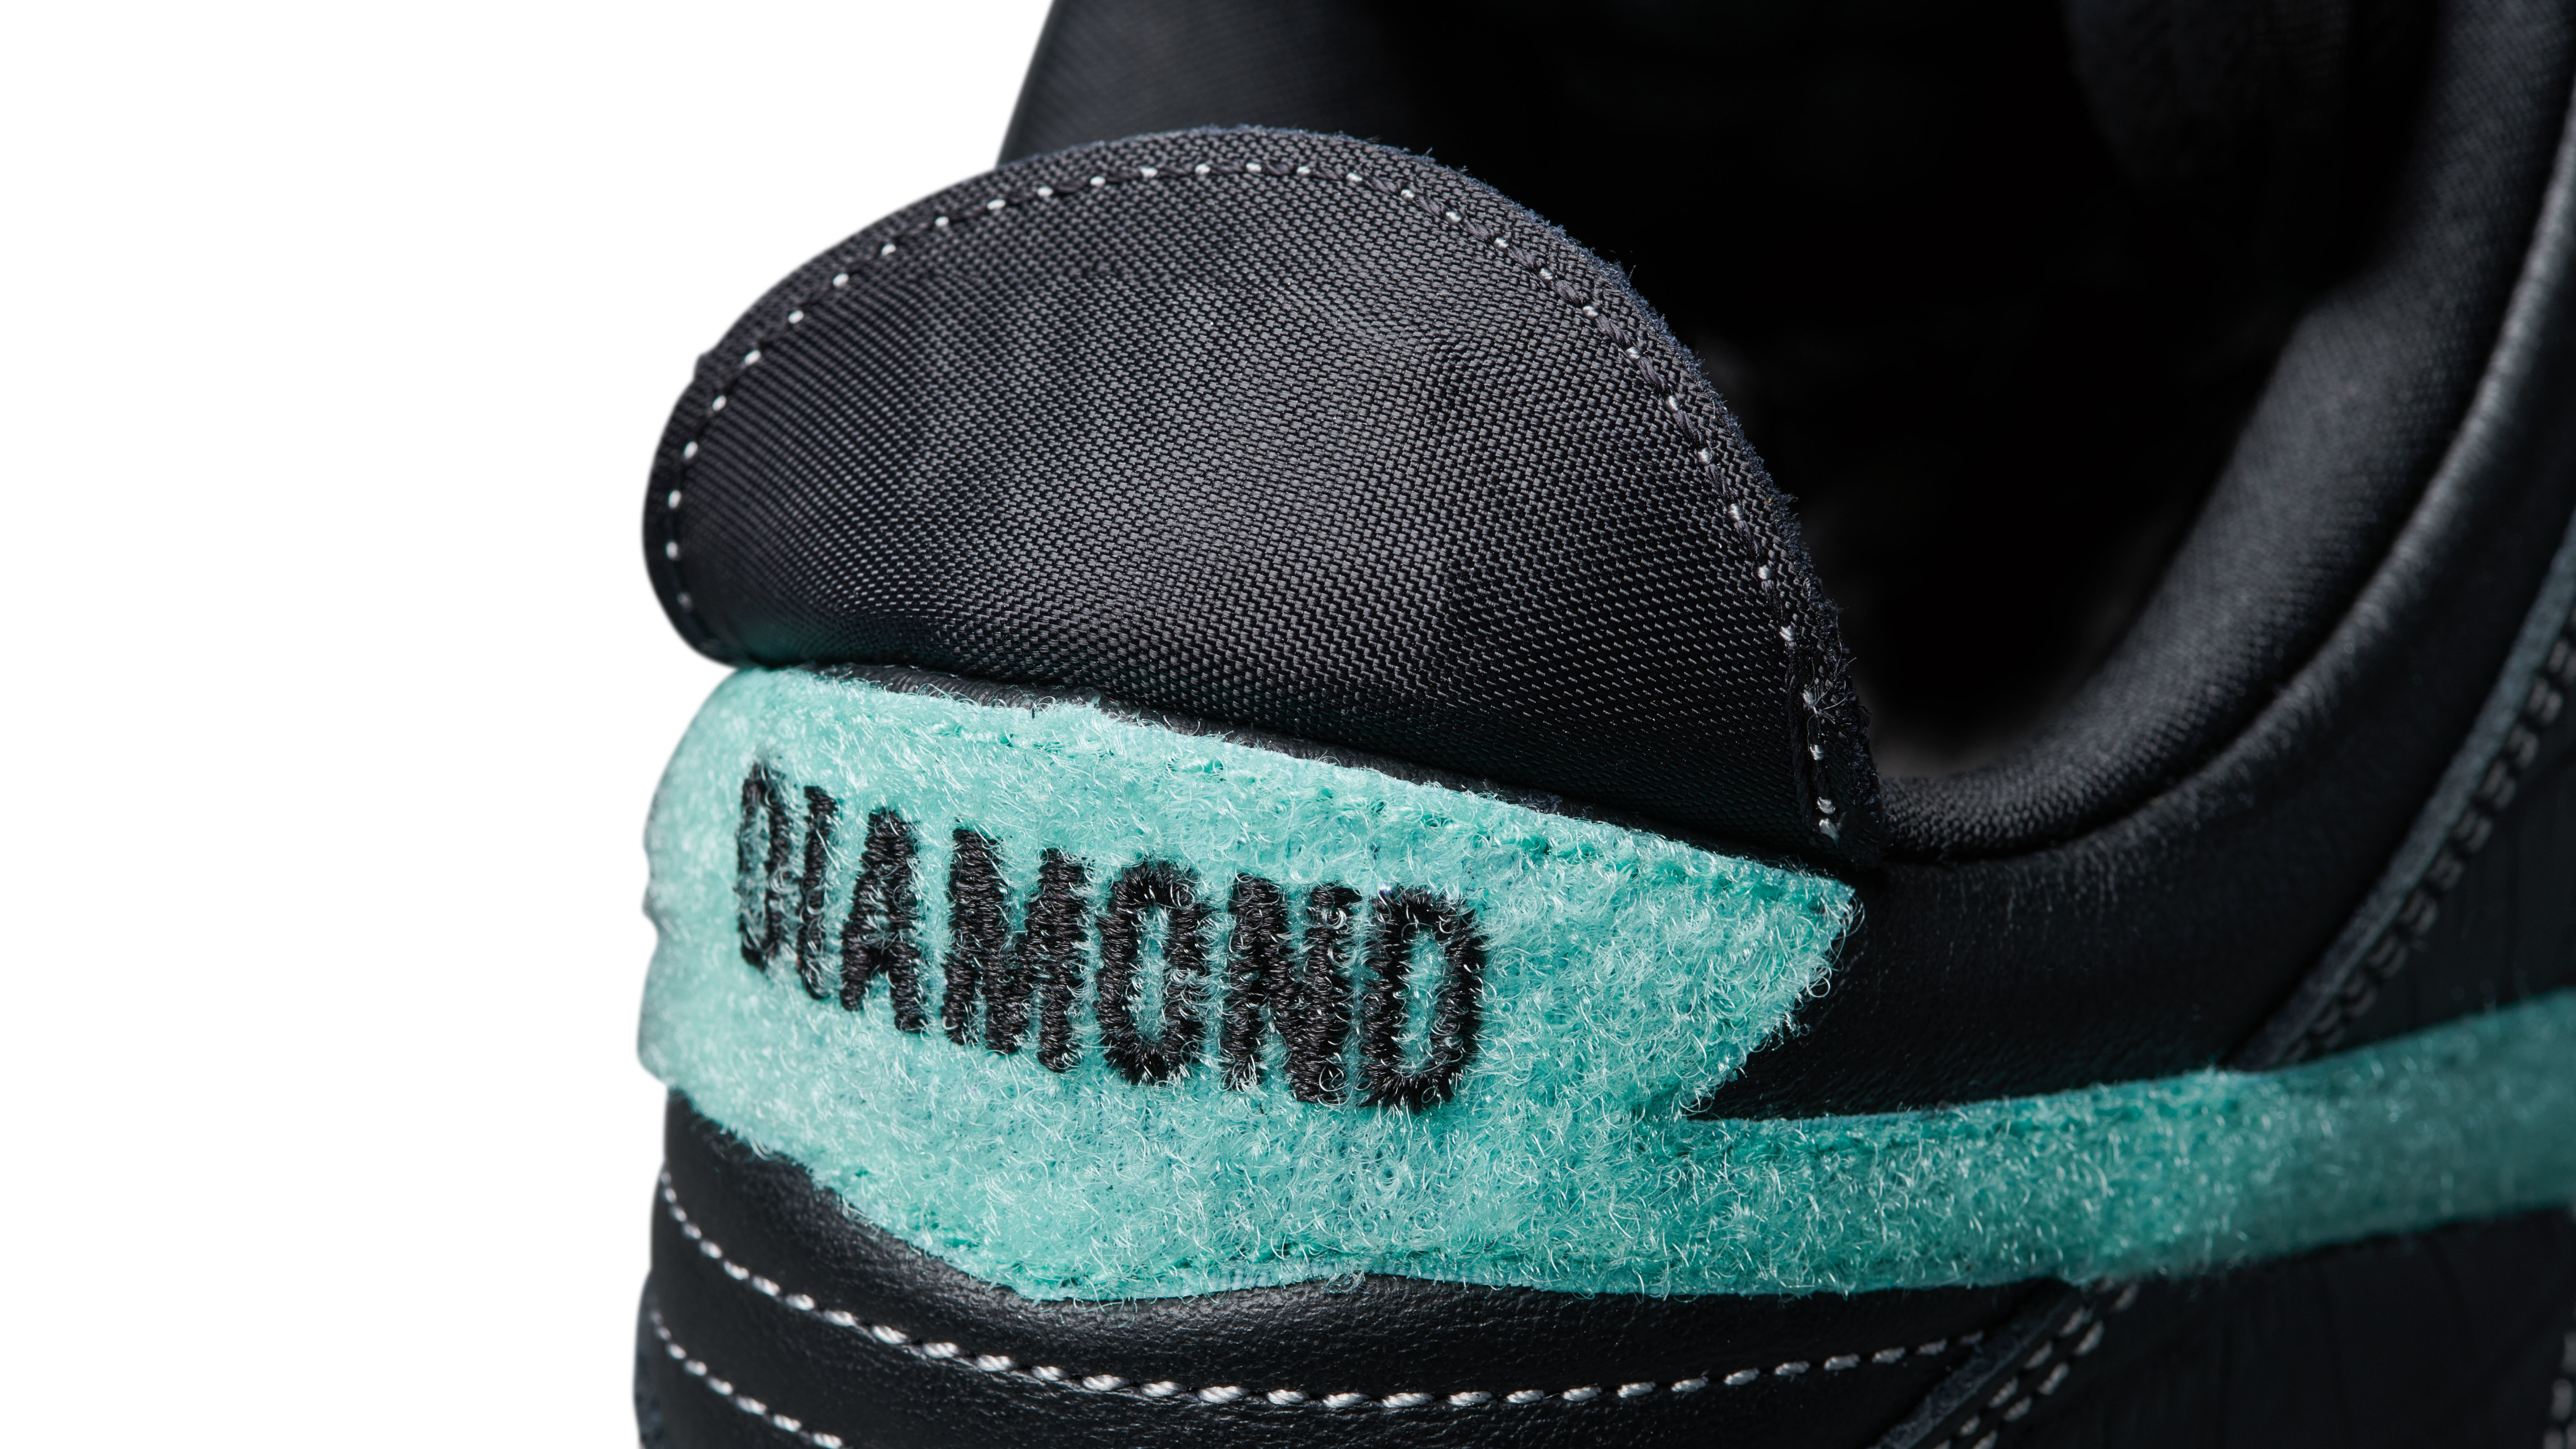 667cd3acbb Diamond Supply Co. x Nike SB Dunk Low 'Black Diamond' Release Date | Sole  Collector